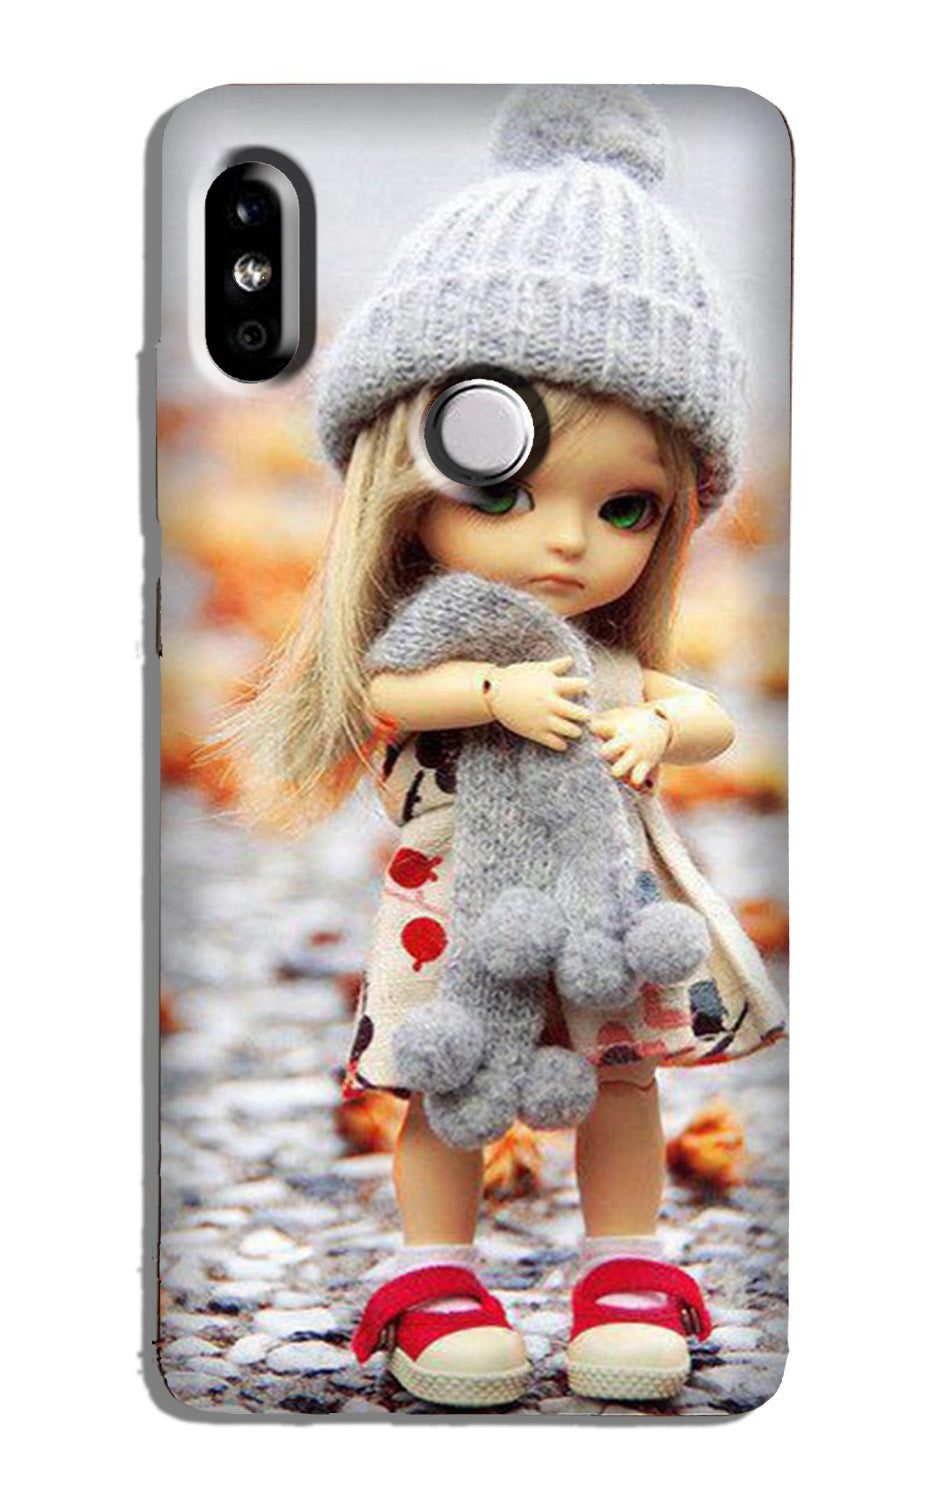 Cute Doll Case for Redmi Note 6 Pro